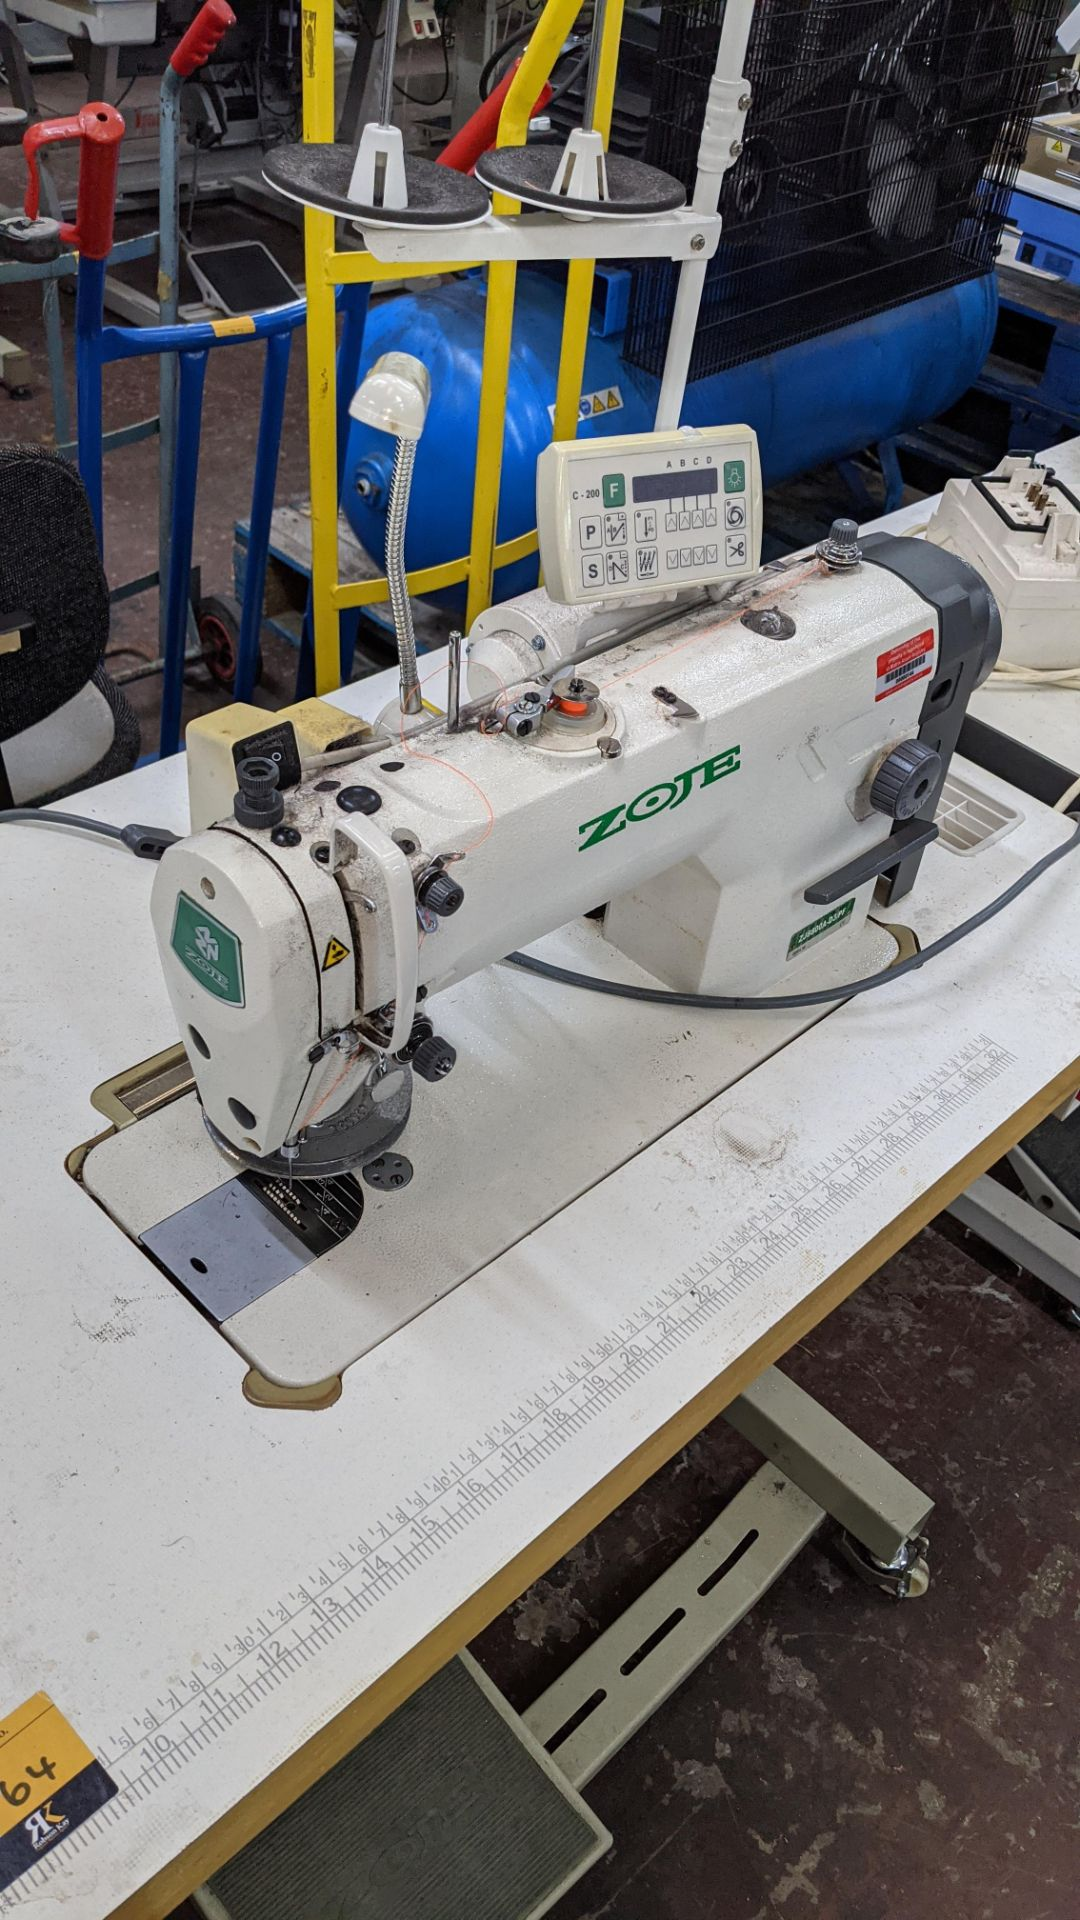 Zoje model ZJ8800A-D3B/PF sewing machine with C-200 controller - Image 13 of 16